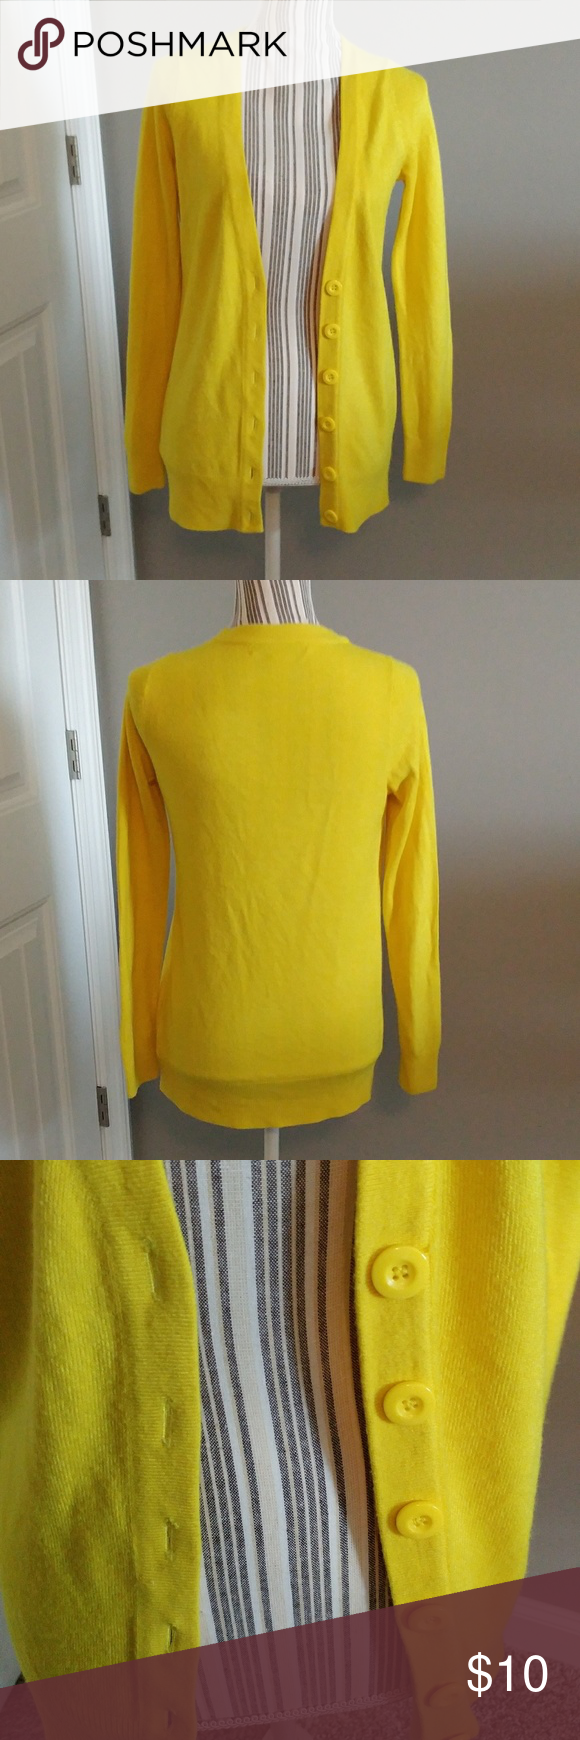 Forever 21 Cardigan Awesome bright yellow cardigan from Forever 21 ...